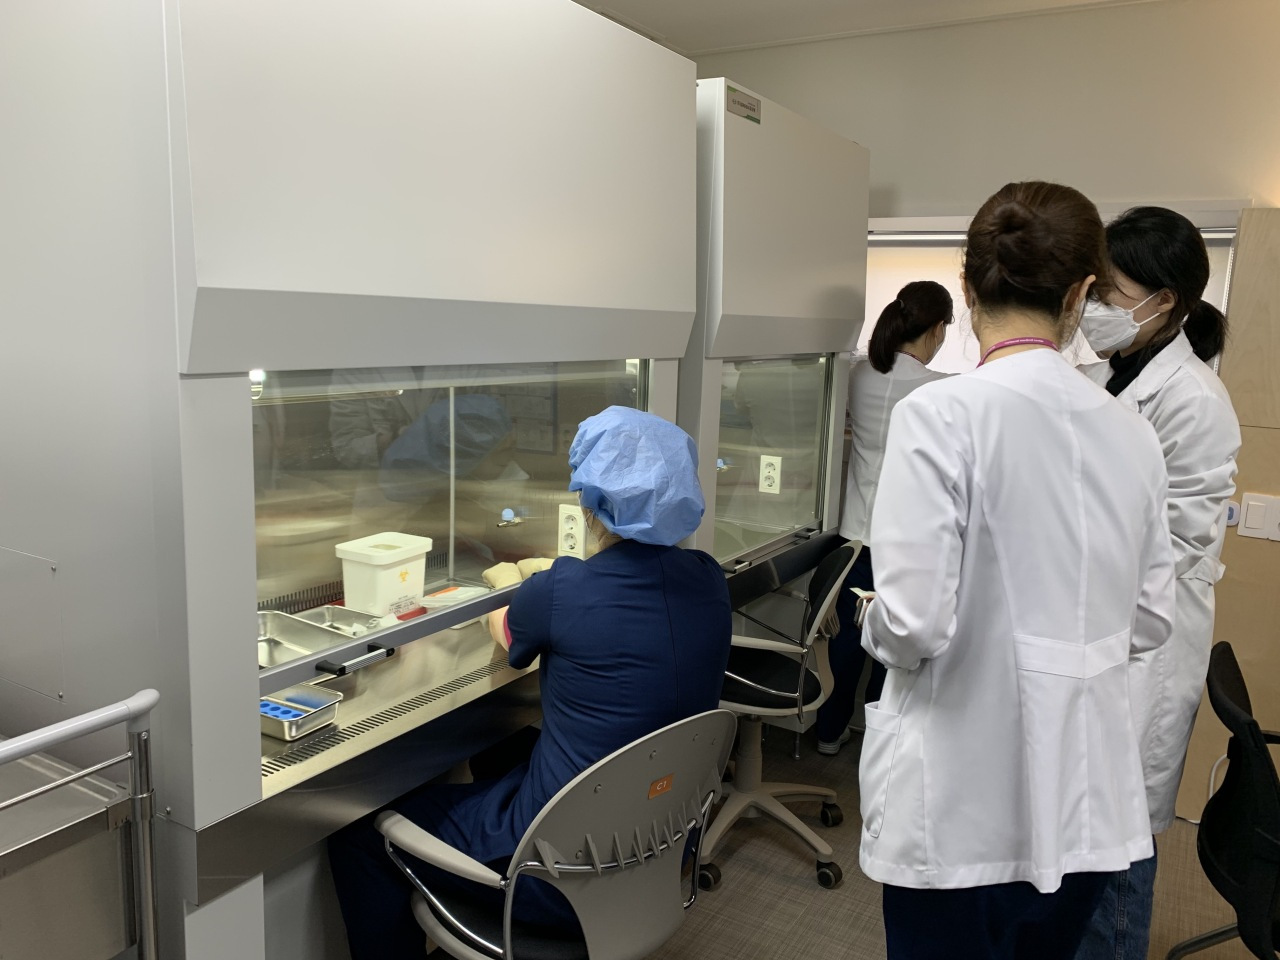 Scientists at the National Medical Center prepare doses of the Pfizer vaccine for administration to hospital personnel. (Kim Arin/The Korea Herald)